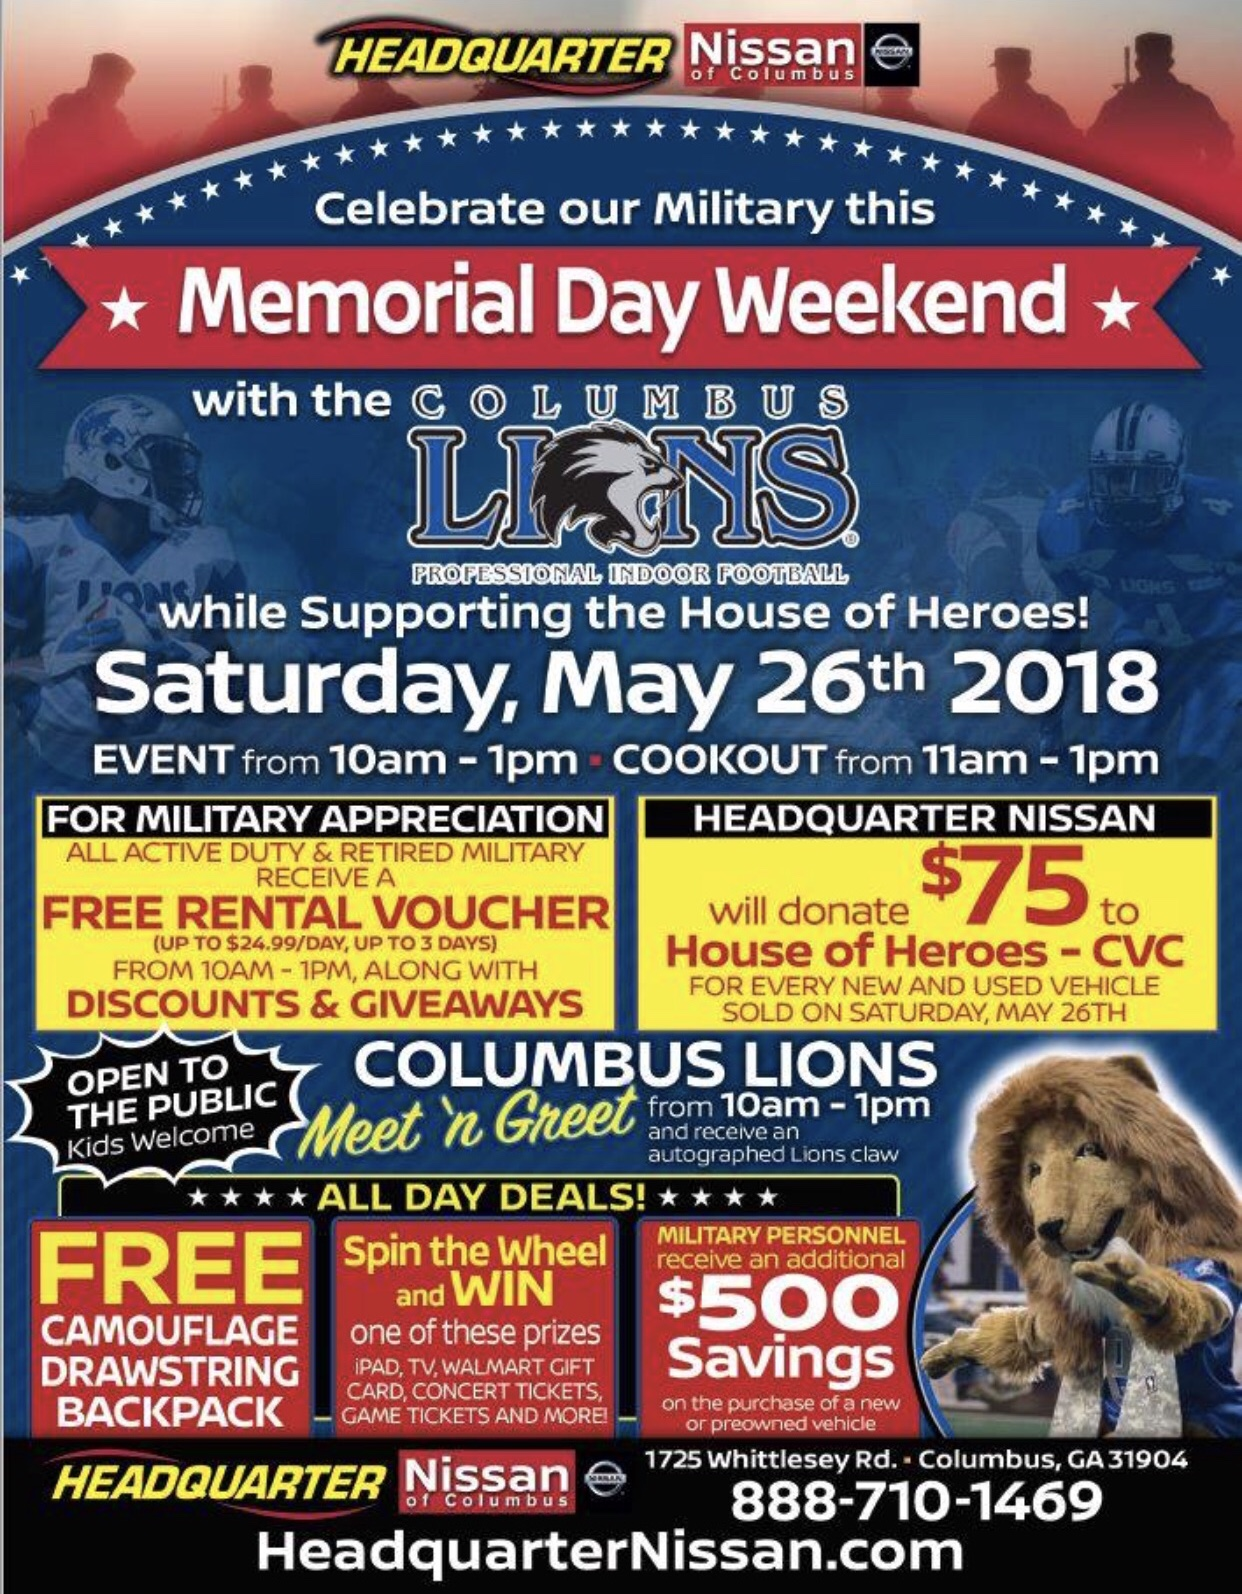 Celebrate Memorial Day Weekend with the Columbus Lions and help support House of Heroes